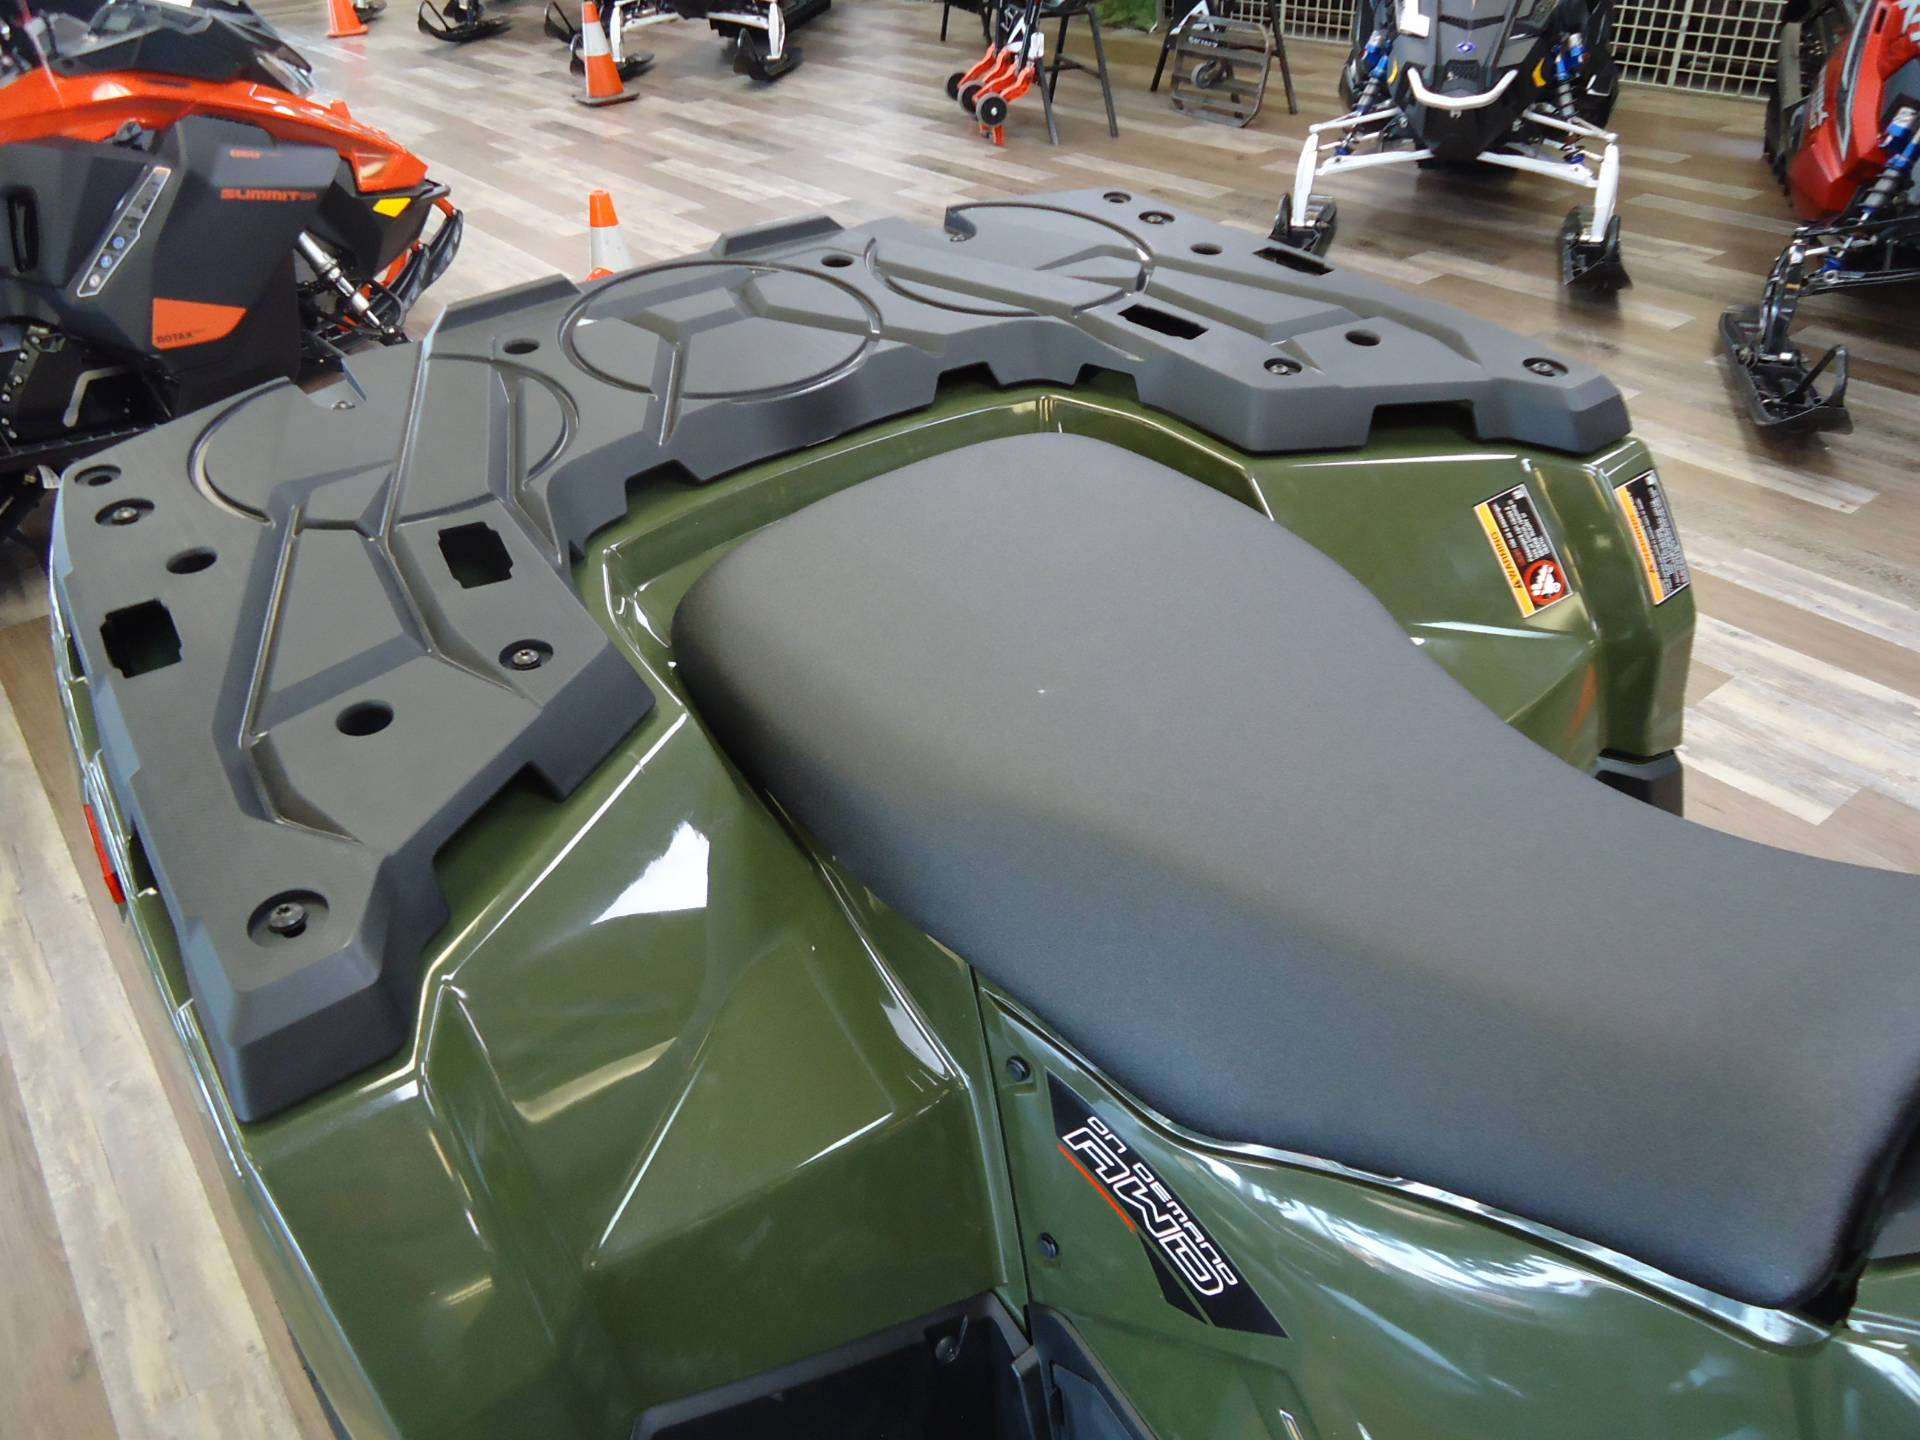 2021 Polaris Sportsman 570 in Denver, Colorado - Photo 11